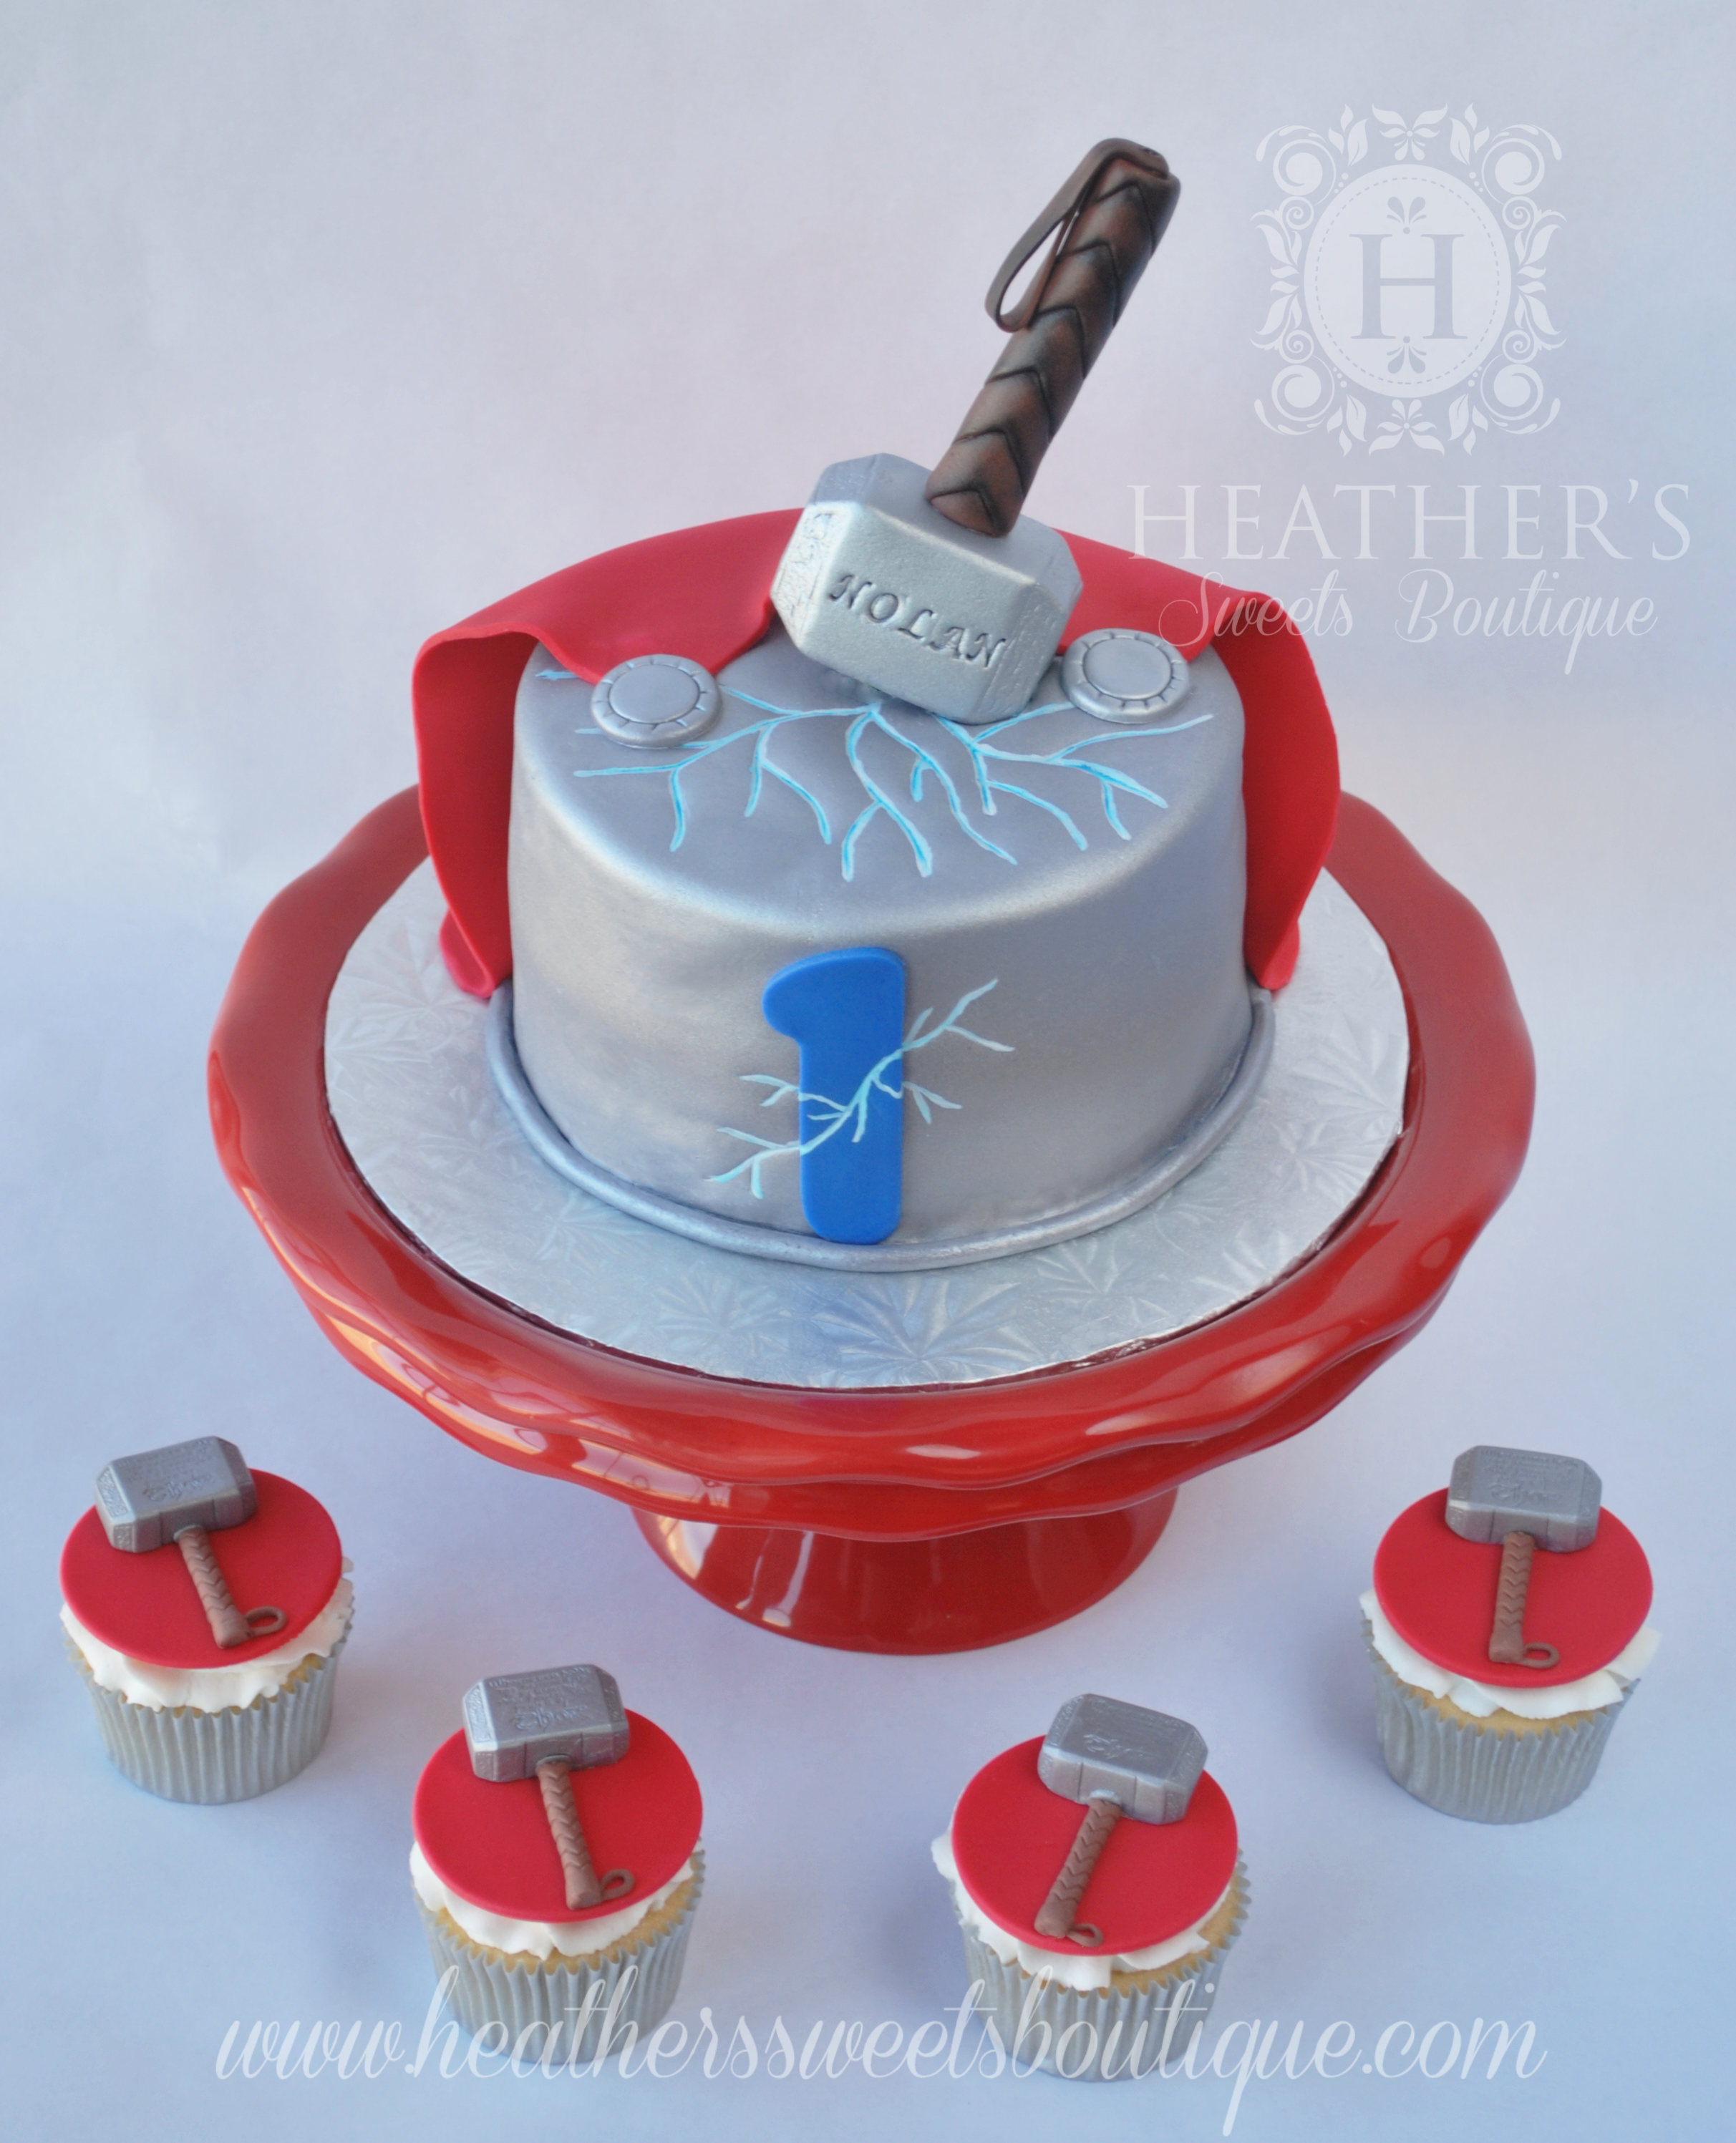 Thor Cake Heathers Sweets Boutique wwwheatherssweetsboutique